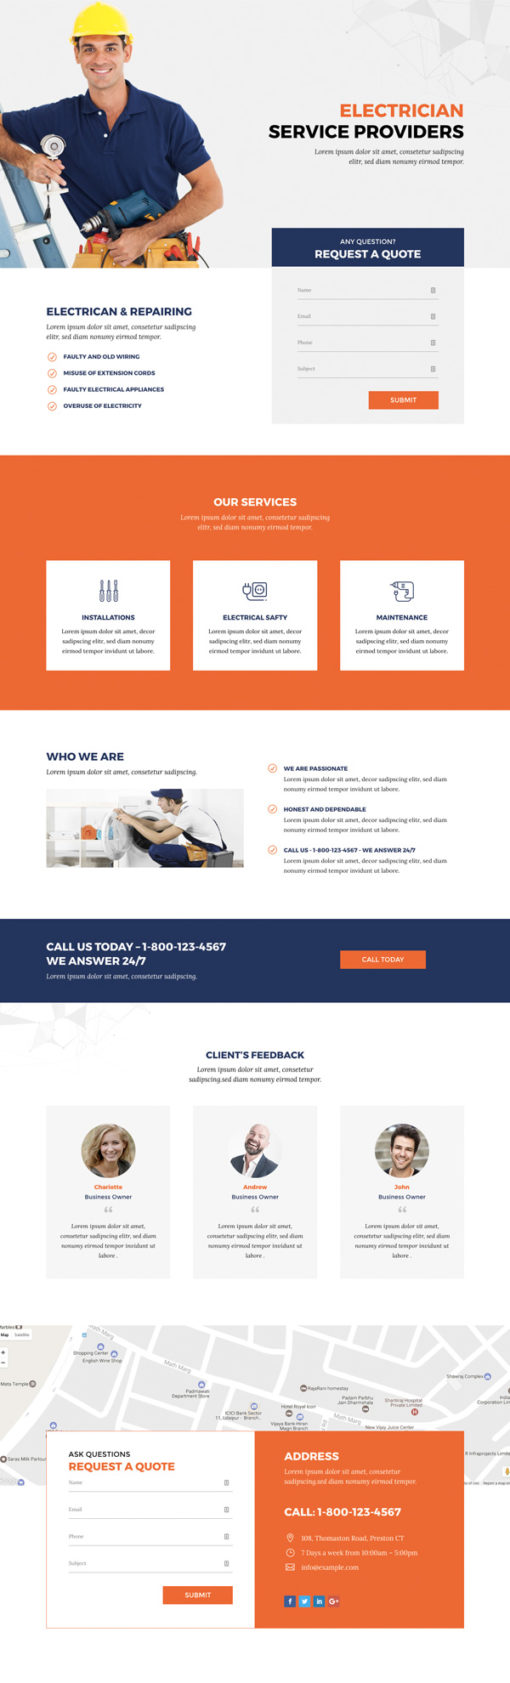 Divi Theme layout for electrician